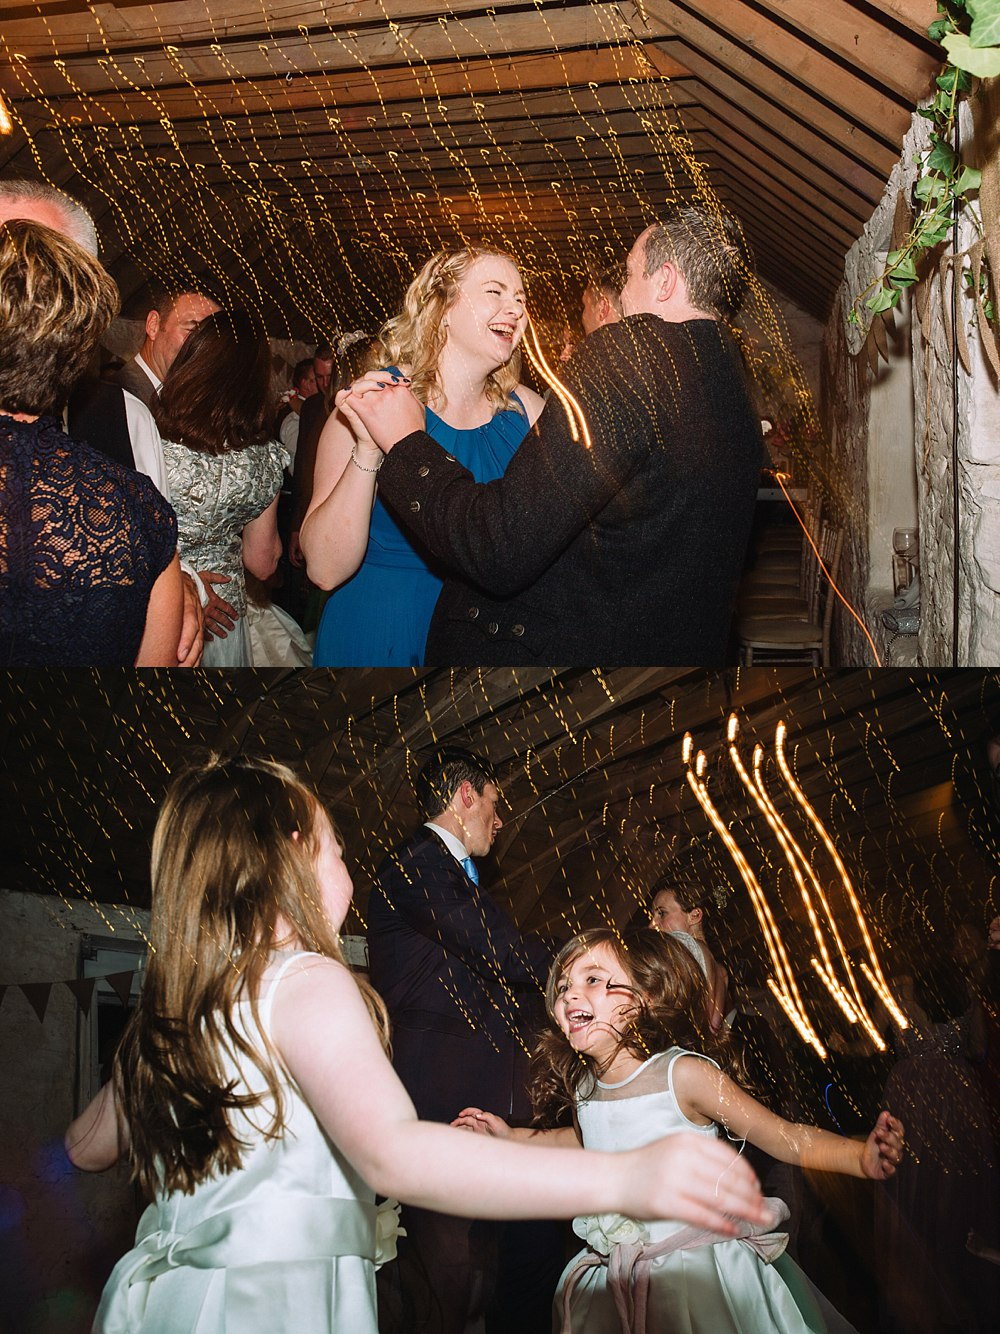 fun and relaxed wedding photography Glasgow 6-37.jpg